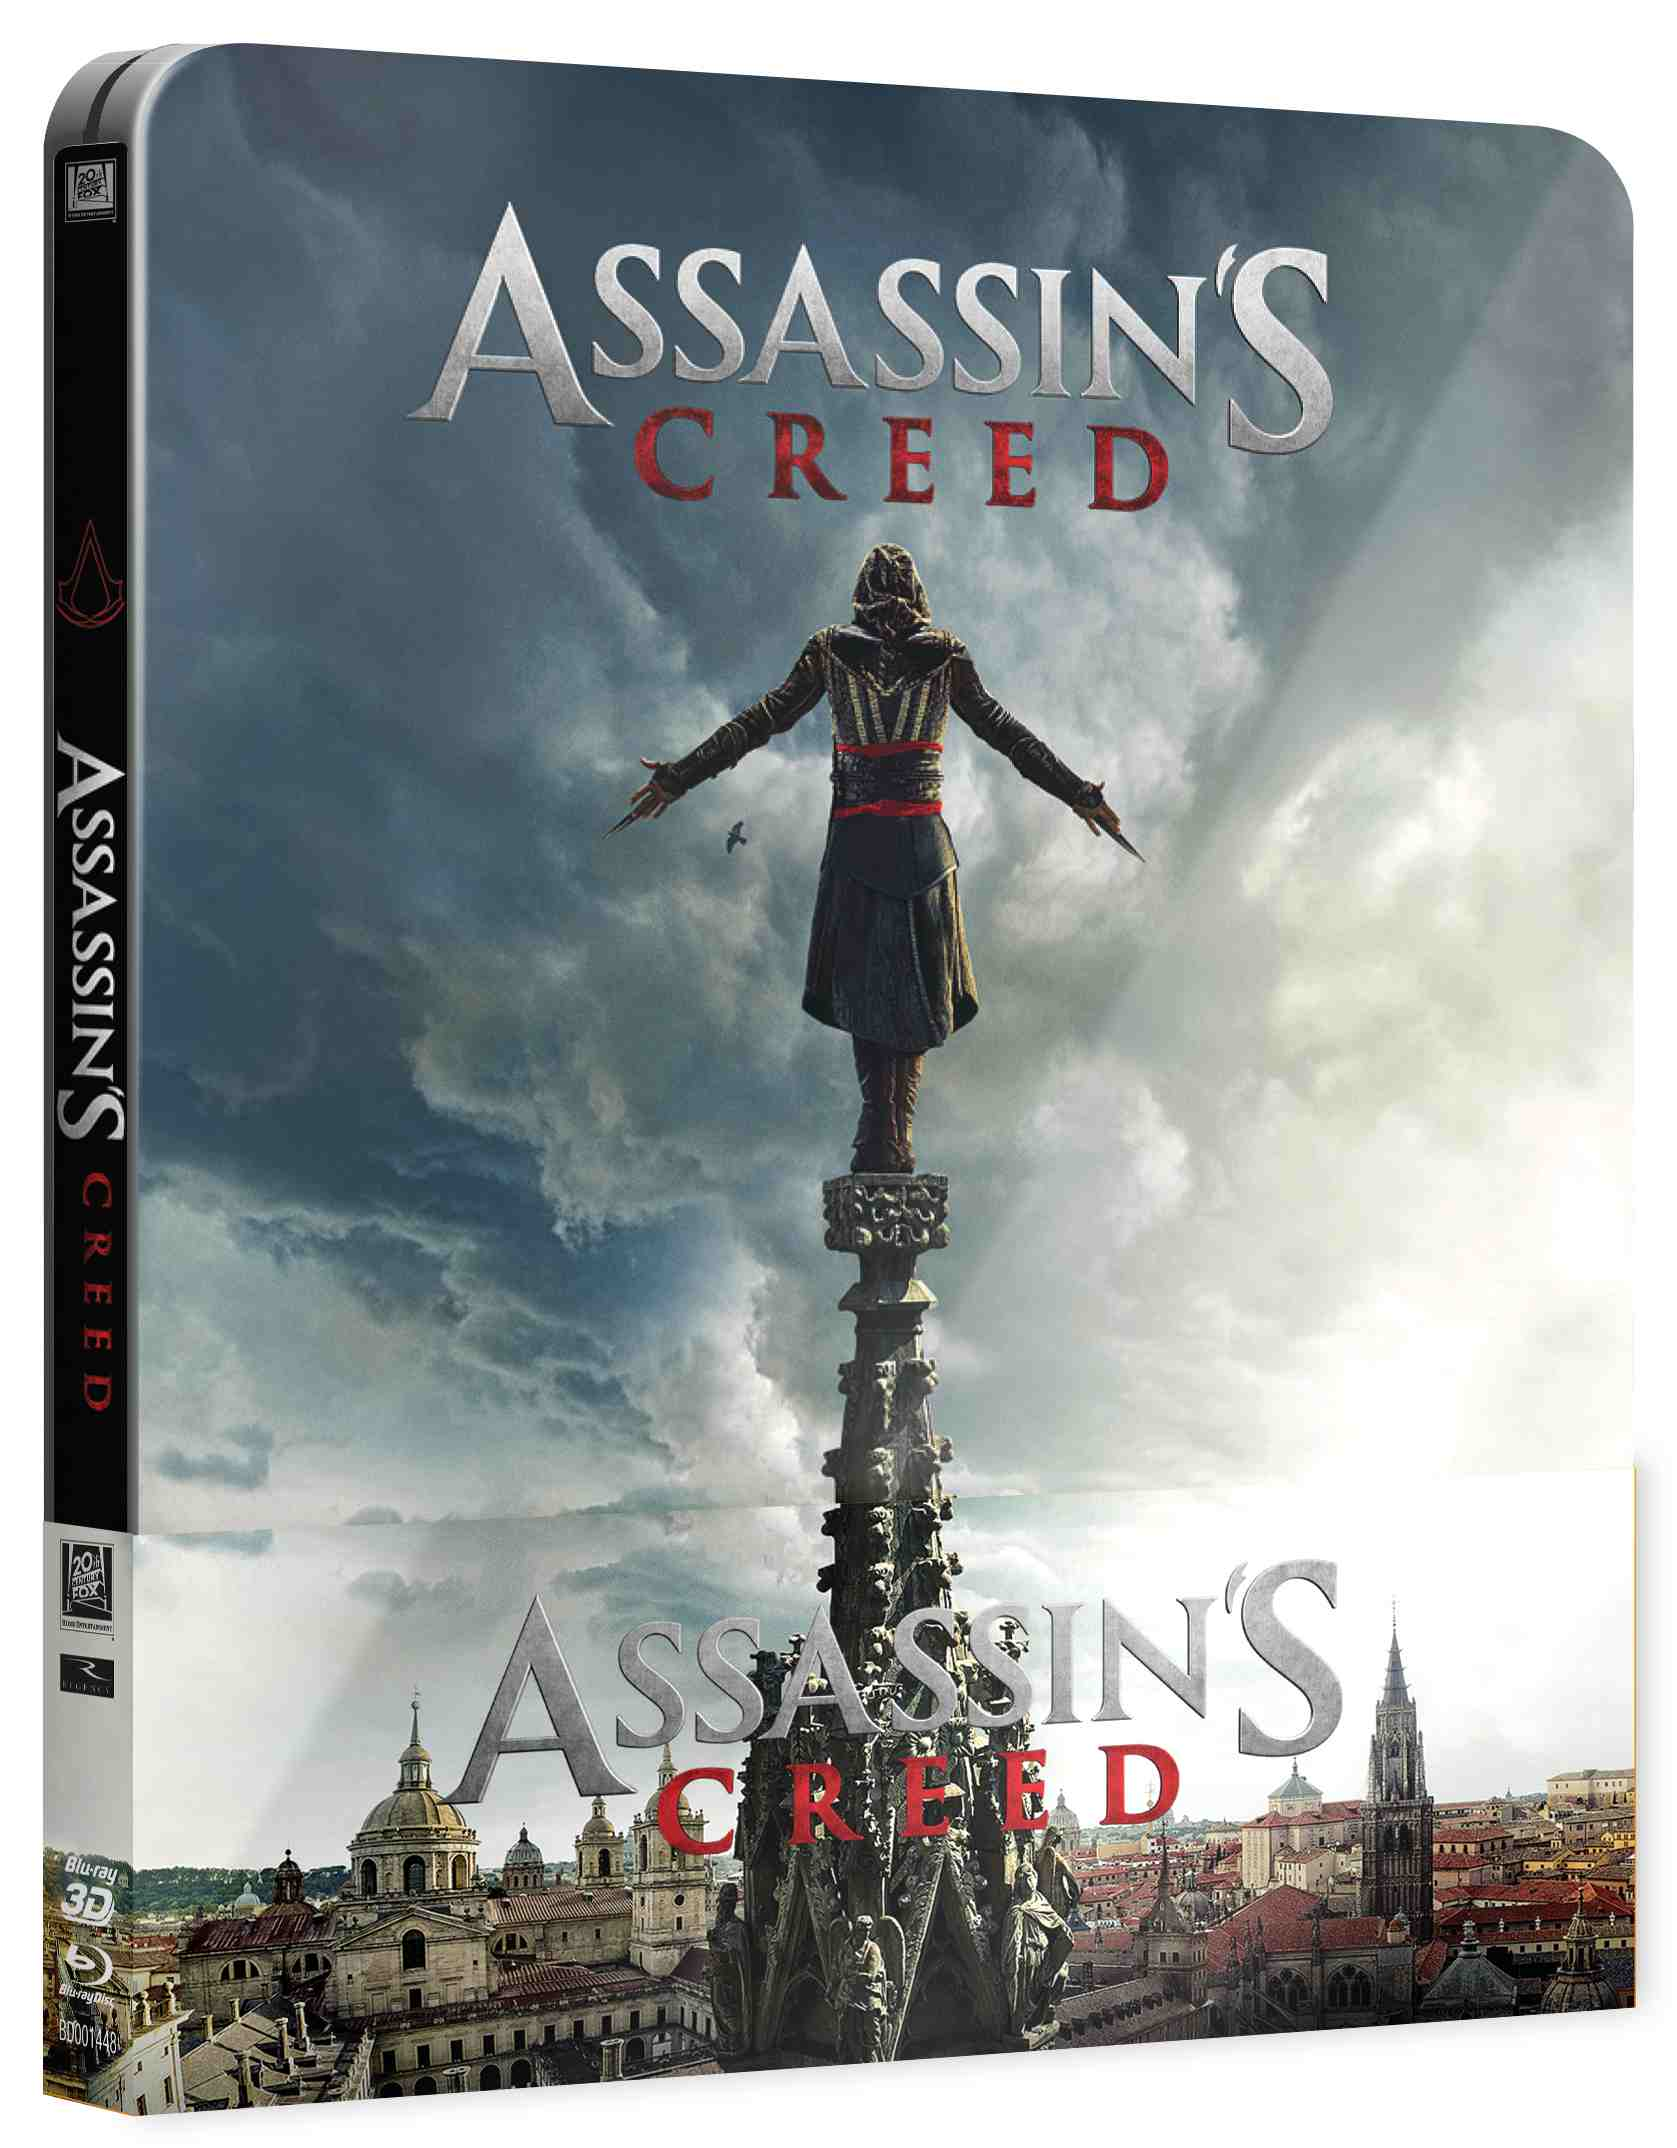 ASSASSINS CREED - Blu-ray STEELBOOK 3D + 2D (2 BD)